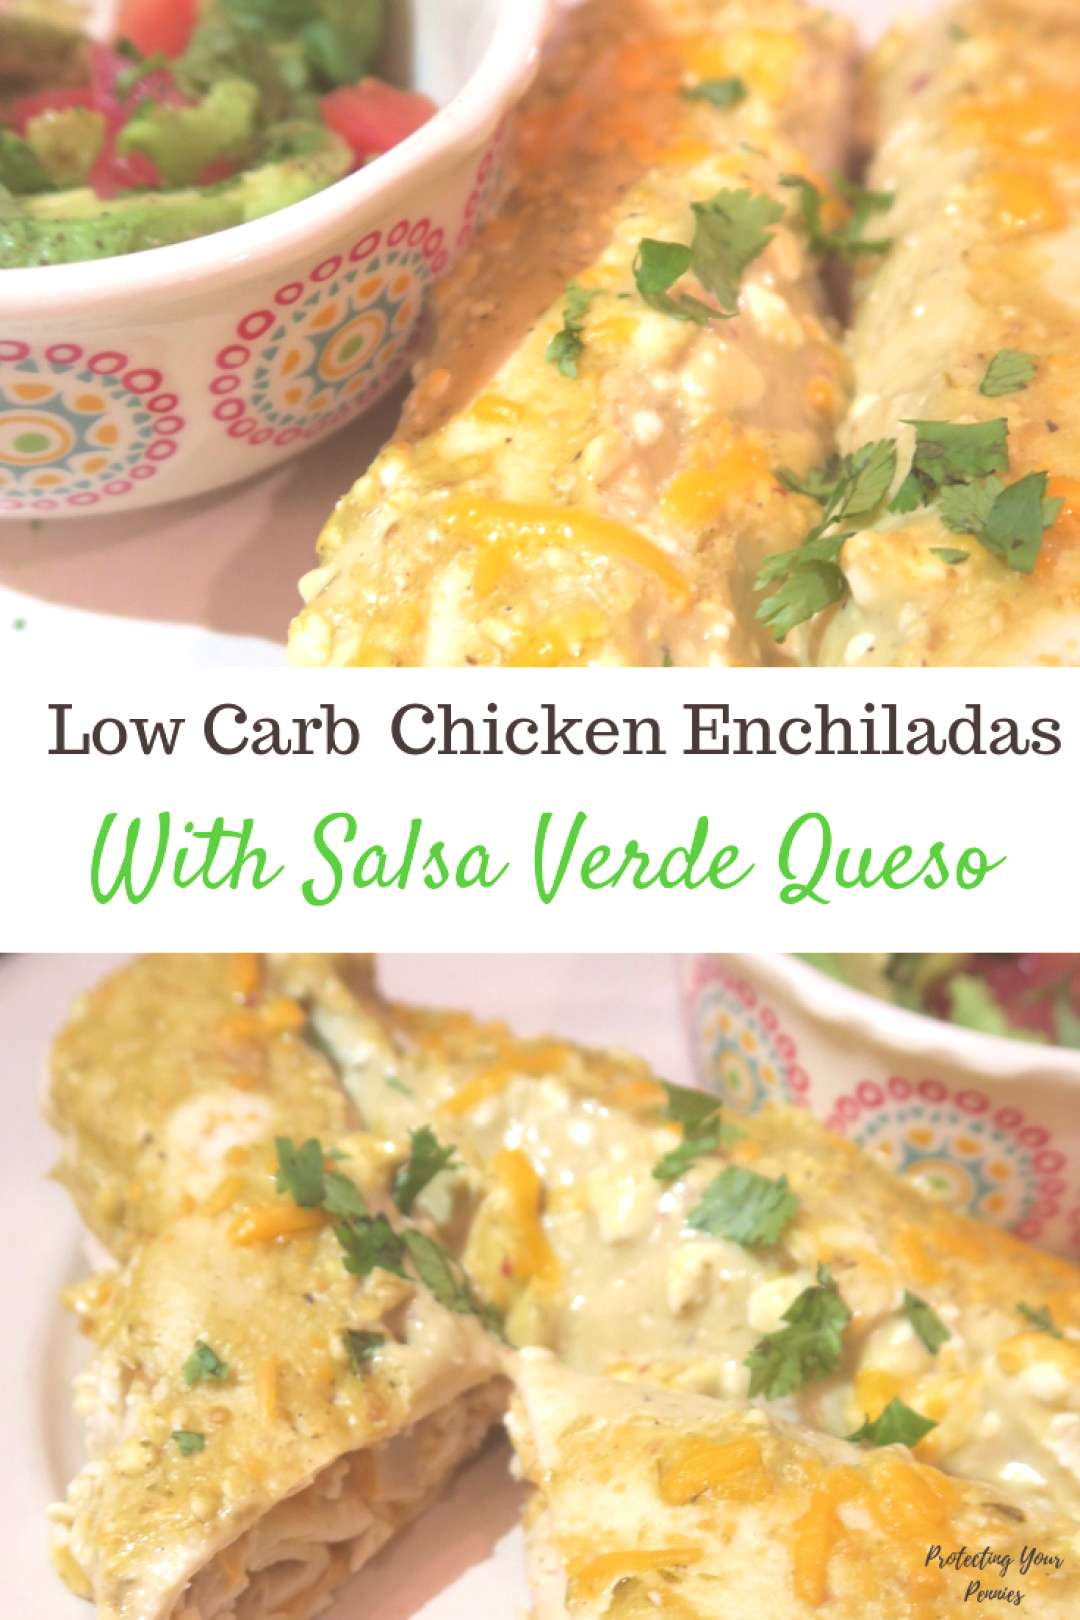 Low Carb Salsa Verde Chicken Enchiladas - Protecting Your Pennies - -